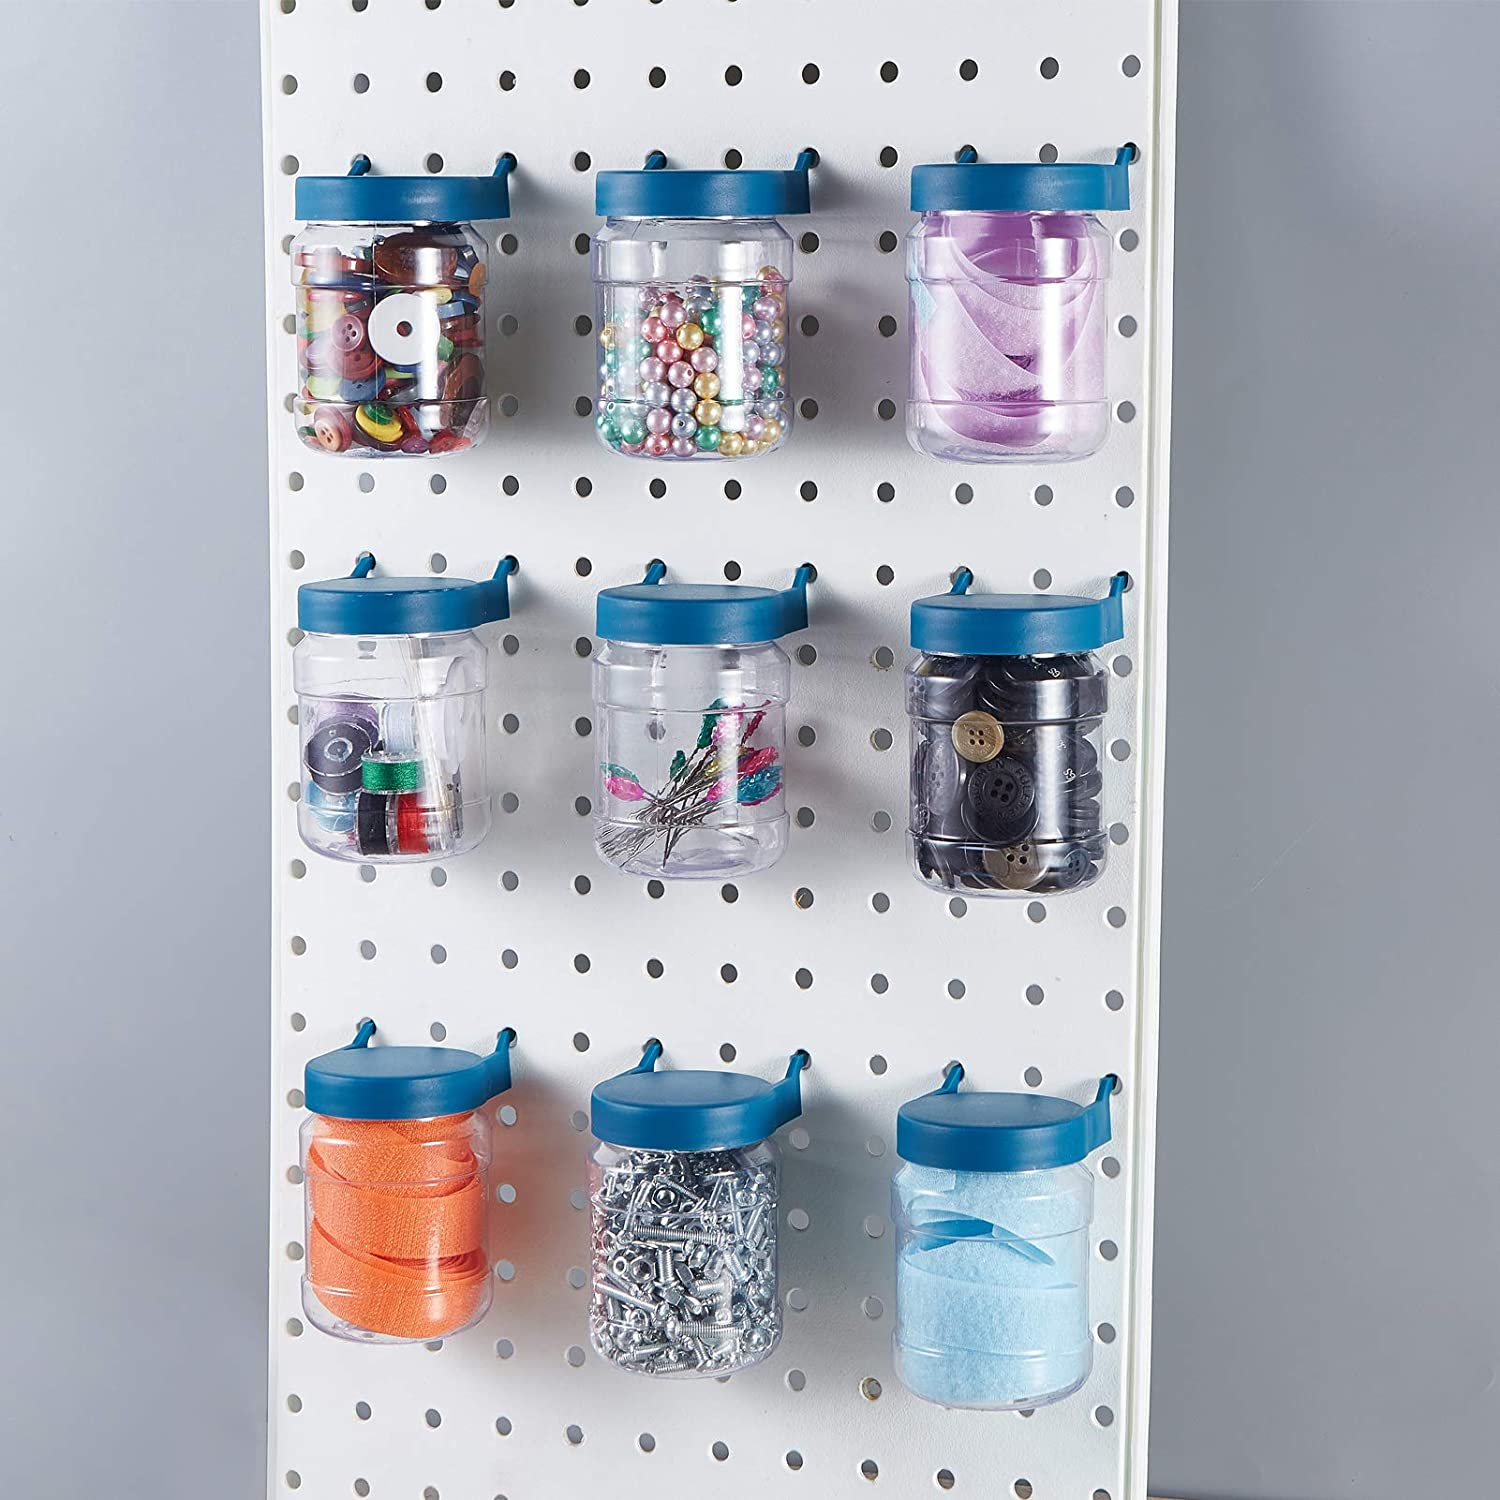 12PCS Pegboard Garage Craft Room Accessories Sewing Storage Organizer Jars Peg Boards Bins Crush and Impact Resistant Box